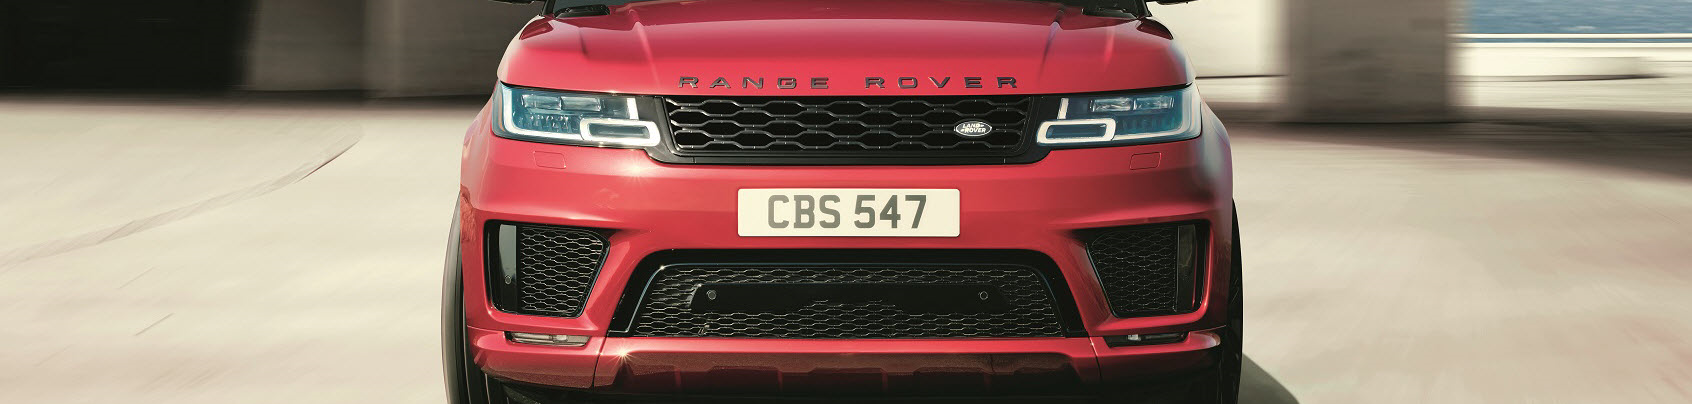 Range Rover Sport Configurations